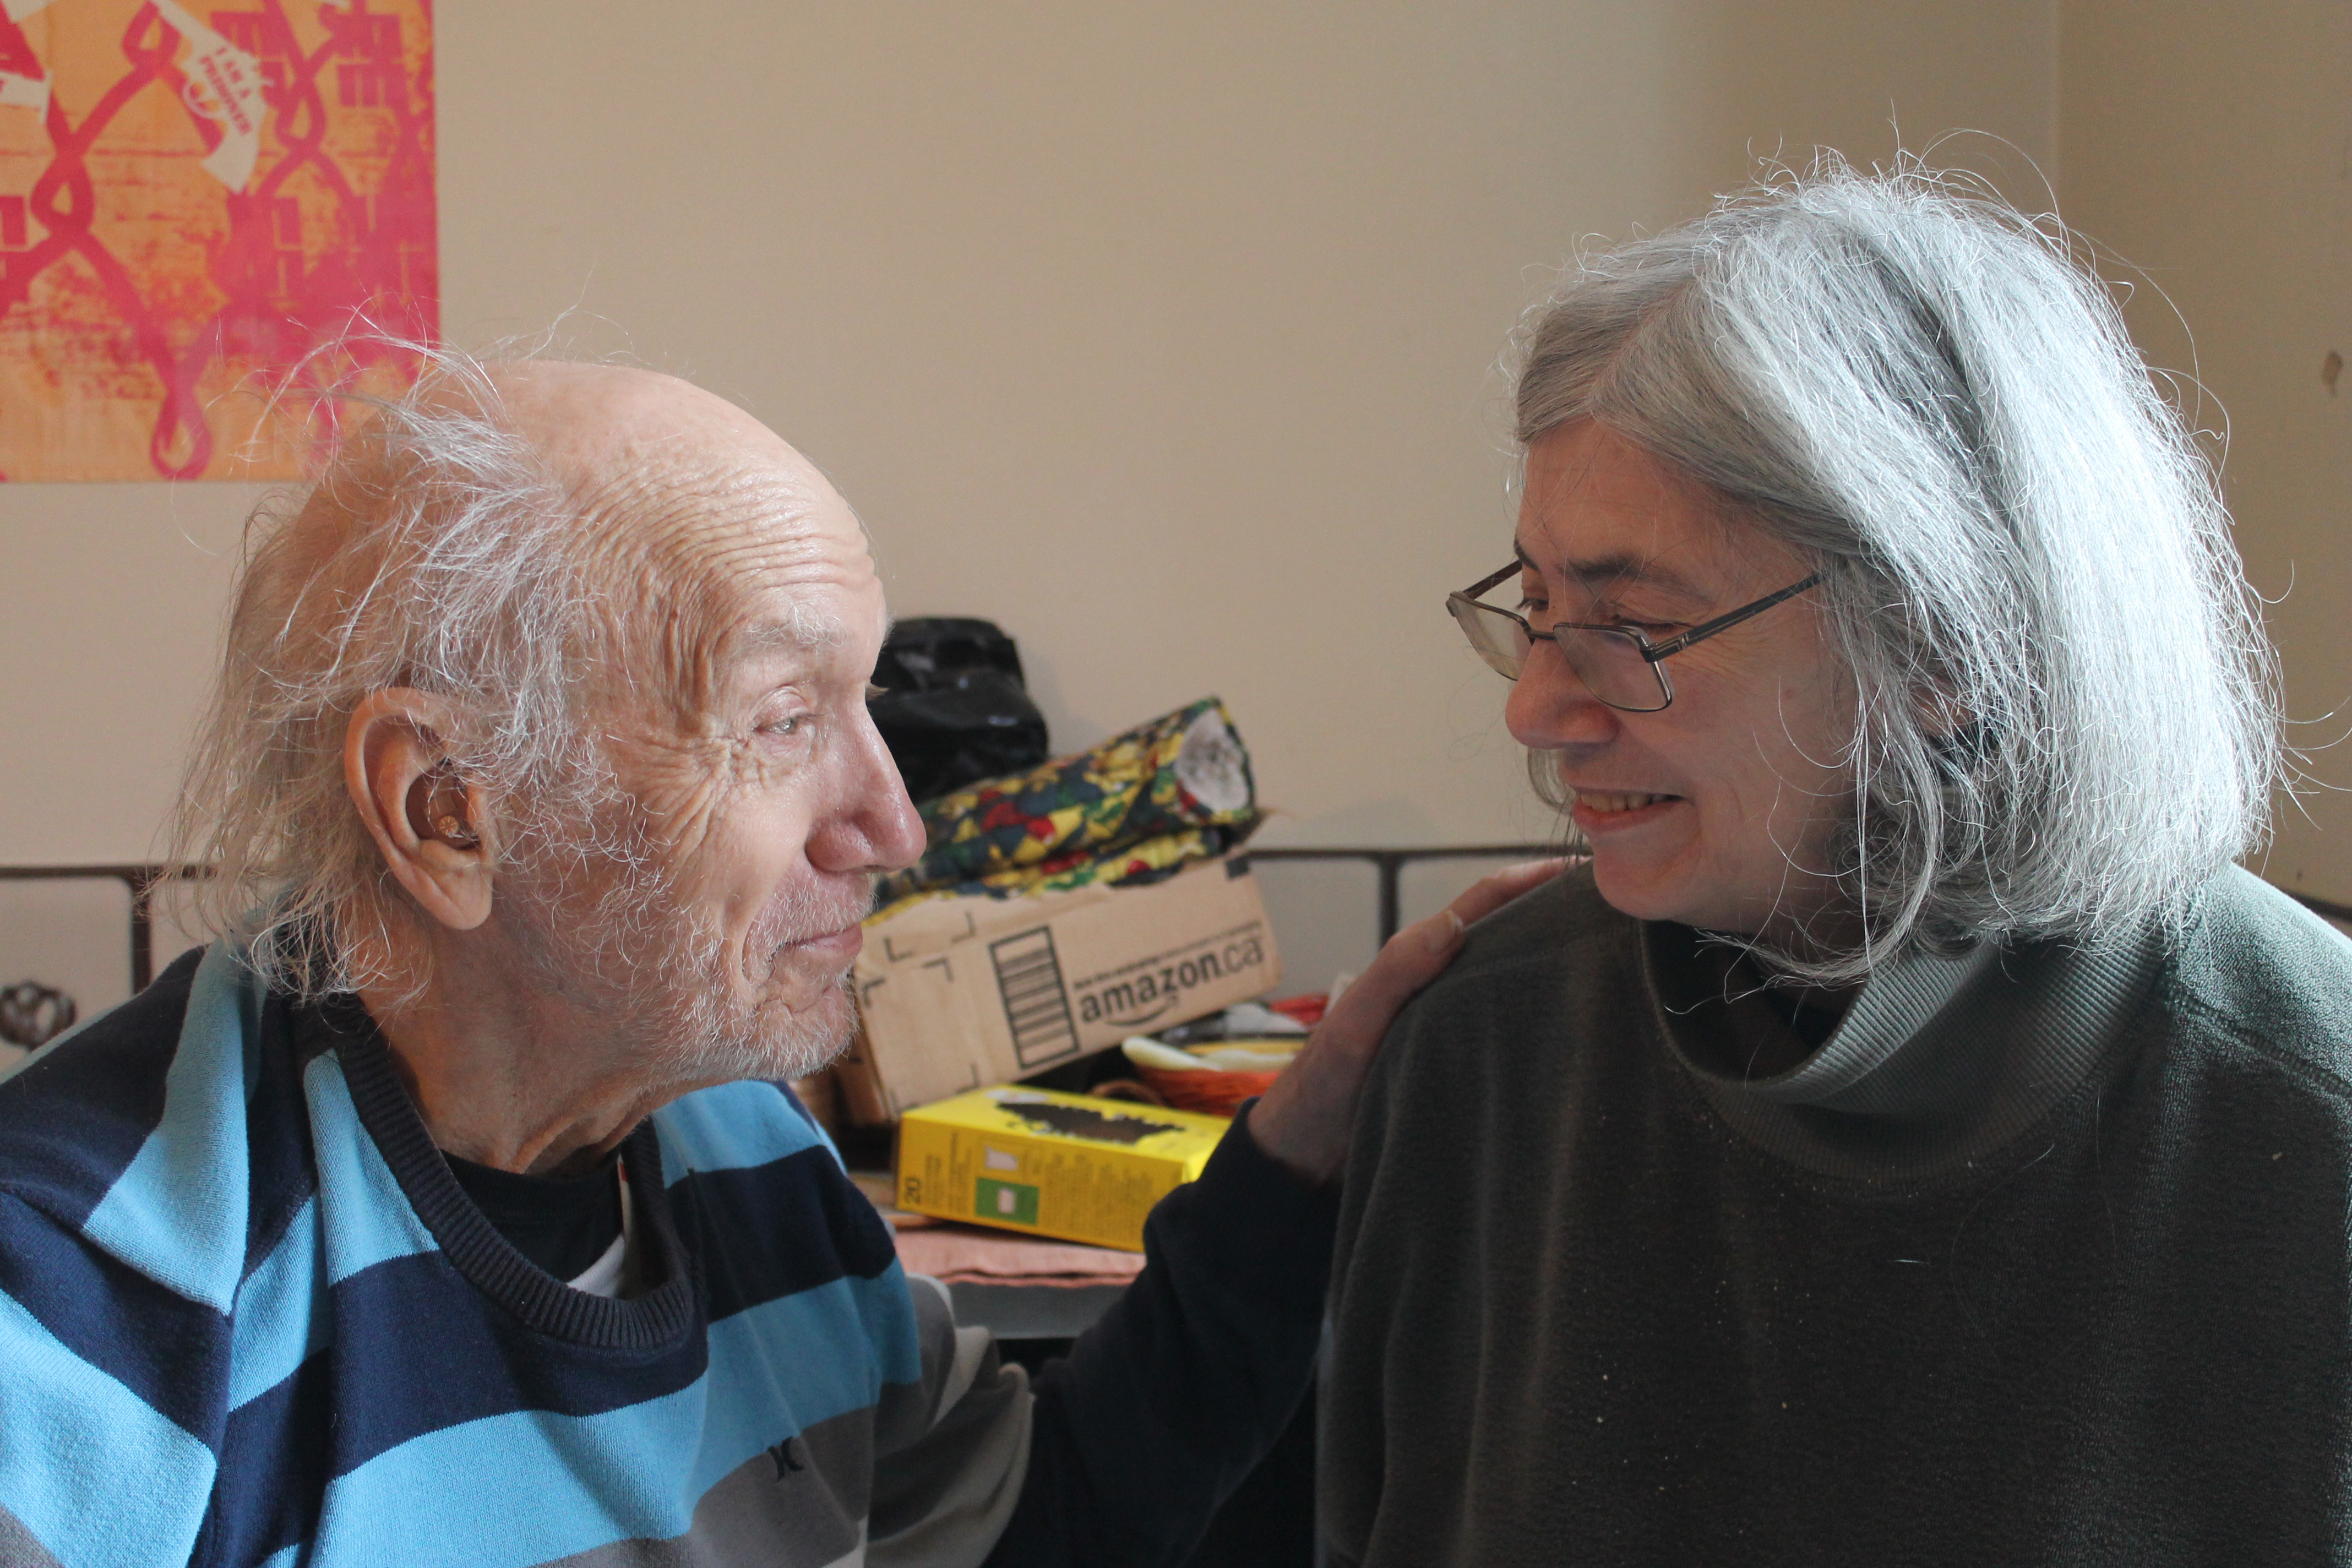 older white haired man on left and grey haired woman with glasses on right